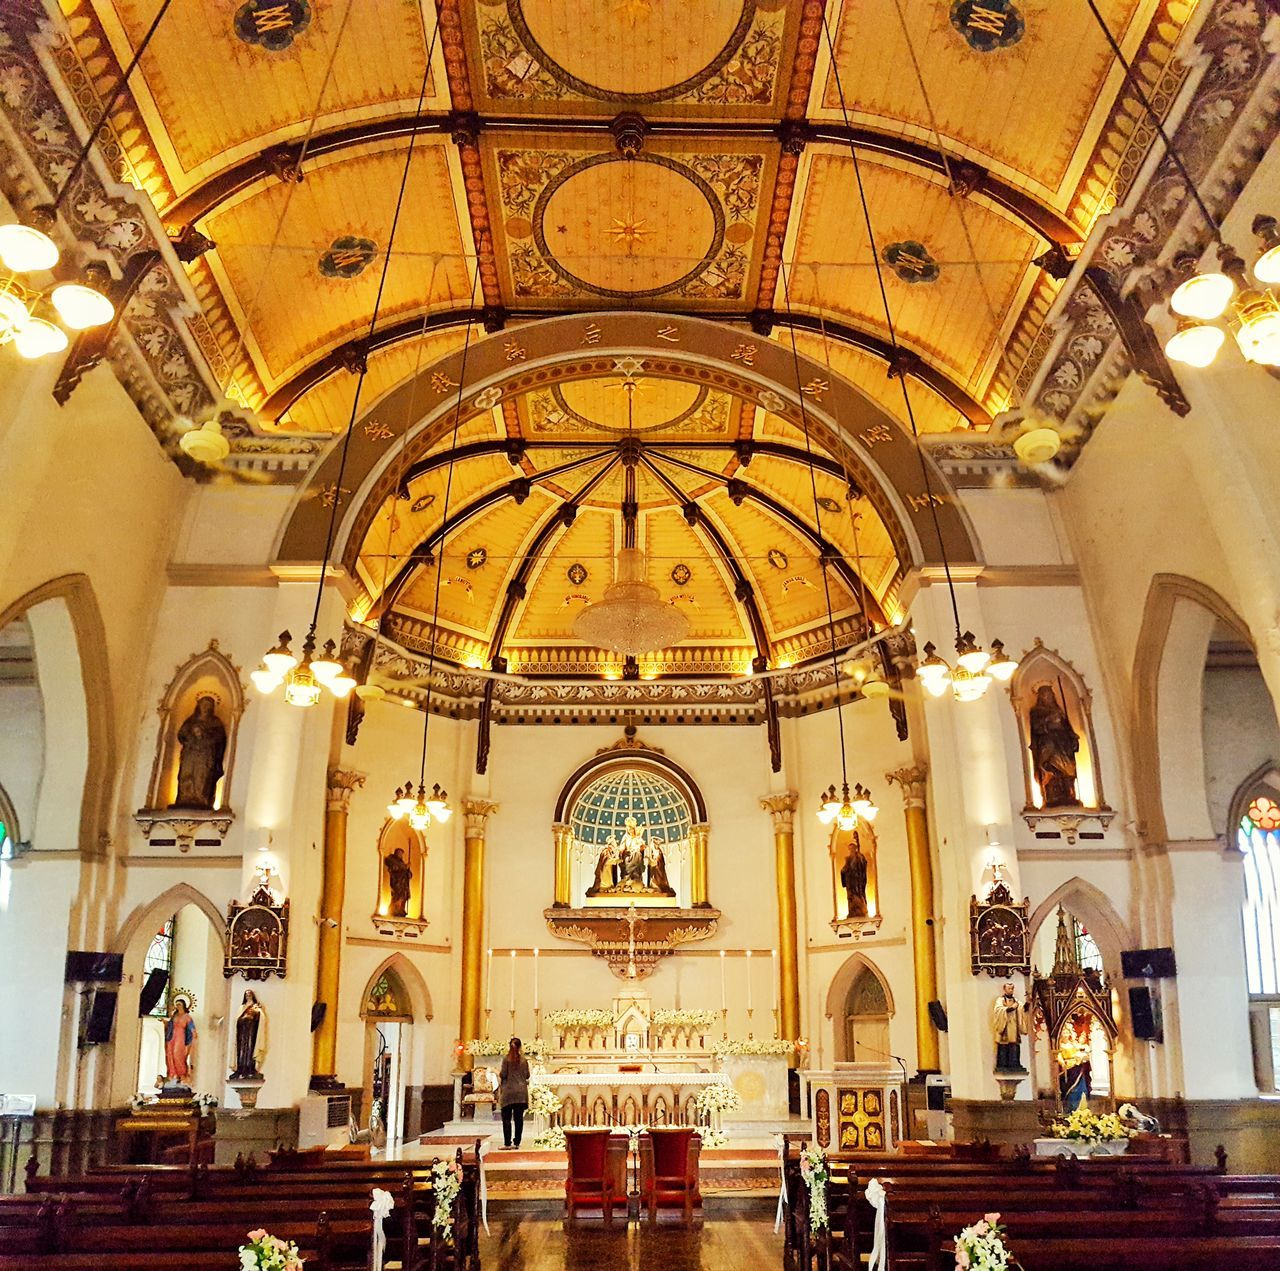 arch, indoors, ceiling, architecture, religion, place of worship, gold colored, illuminated, pew, altar, no people, day